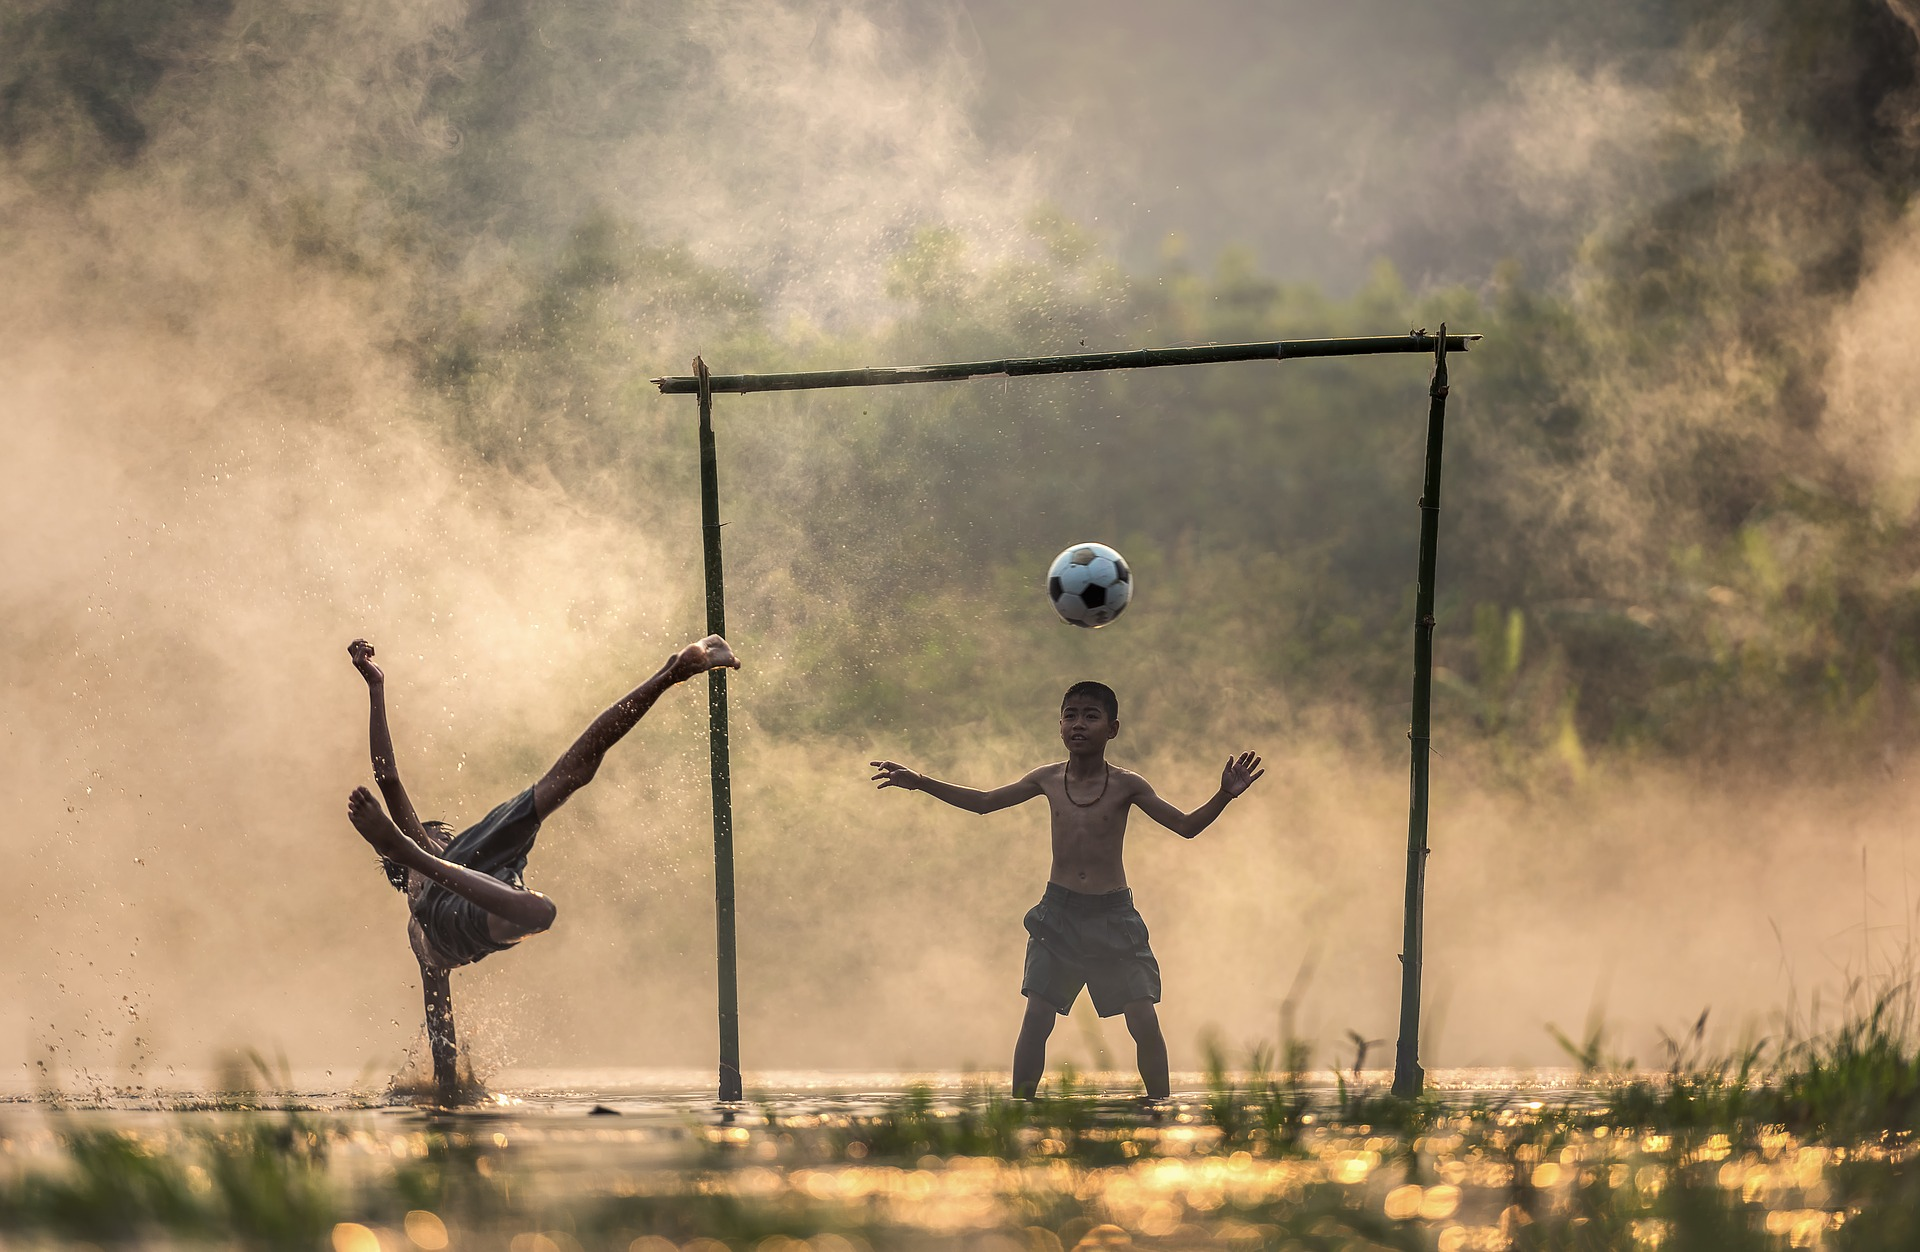 Why should children often play outdoor games